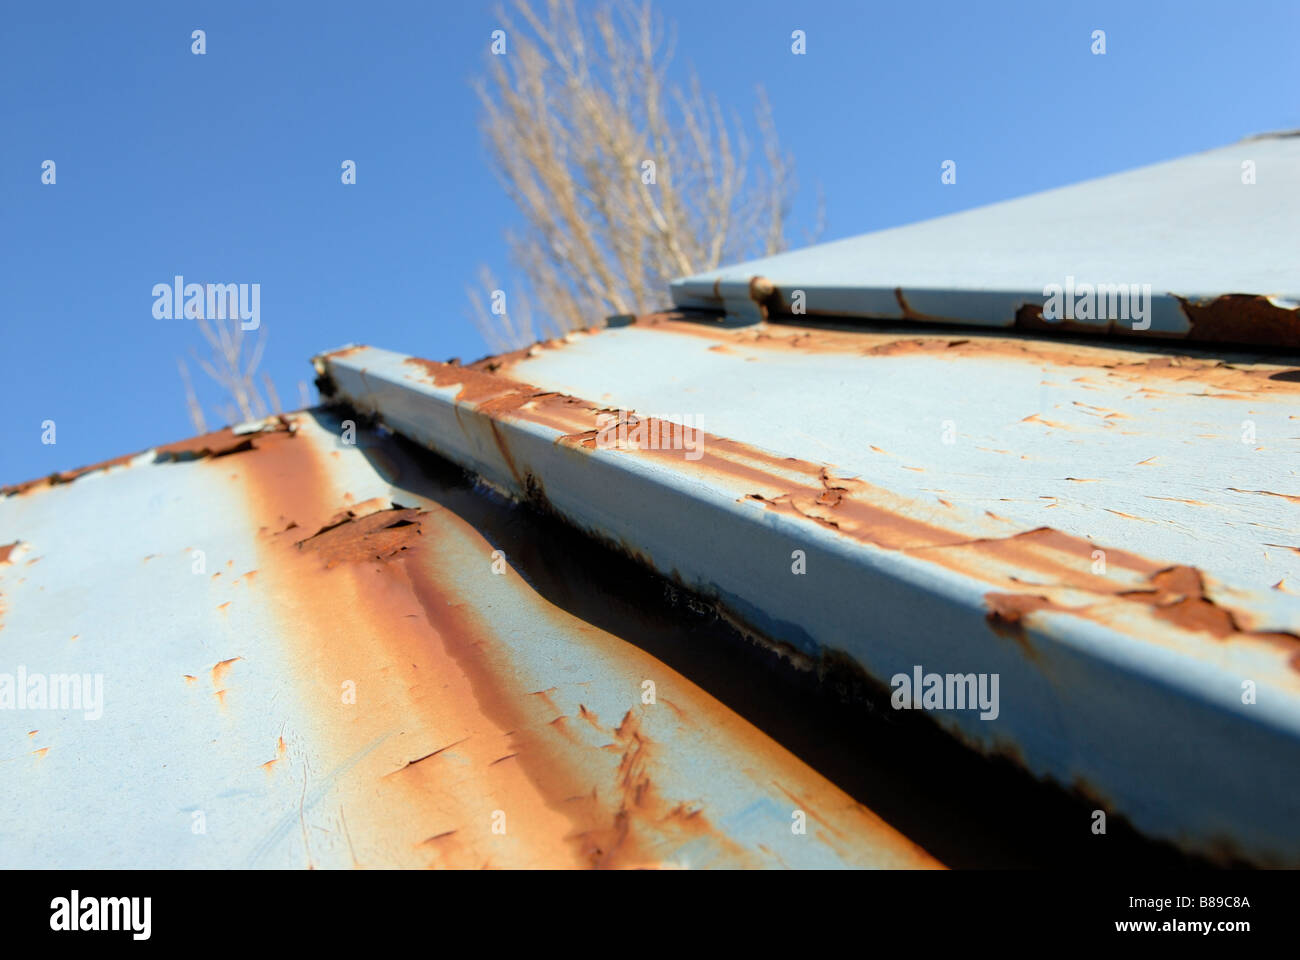 RUSTY CONTAINER - Stock Image